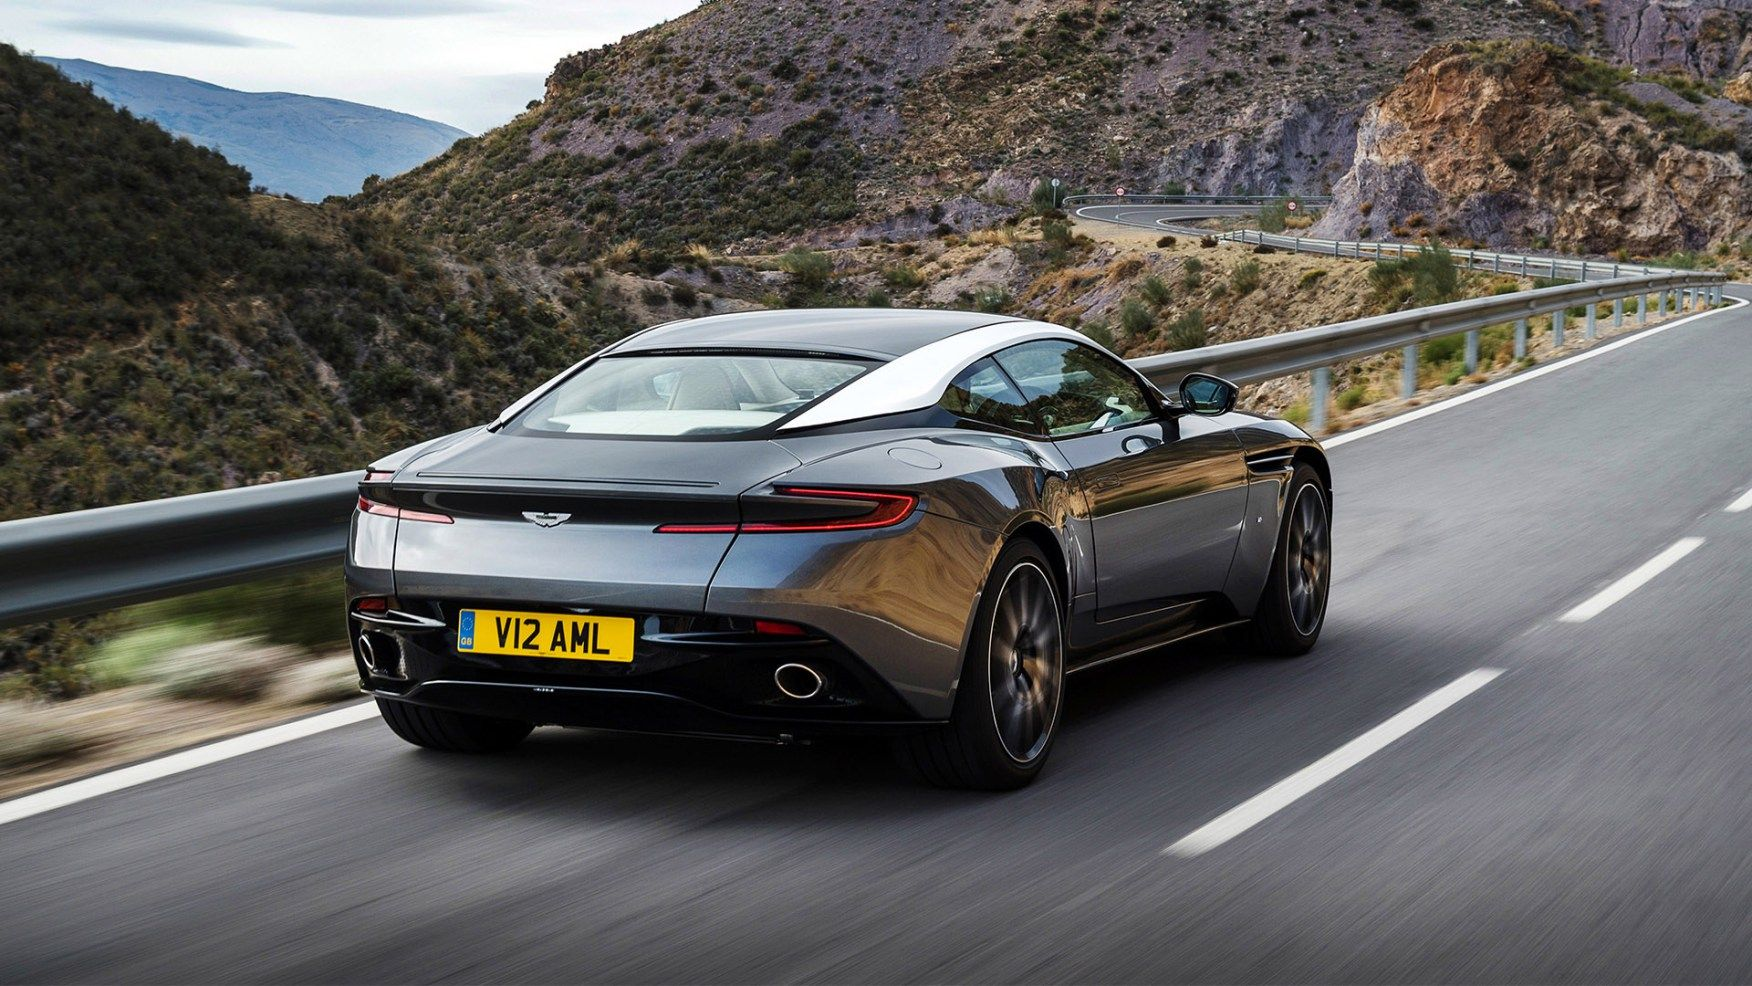 The Aston Martin Db11 Tuscany Trip Is One Of New Specially Curated Luxury Experiences Offered By Automotive Brand Called Art Living